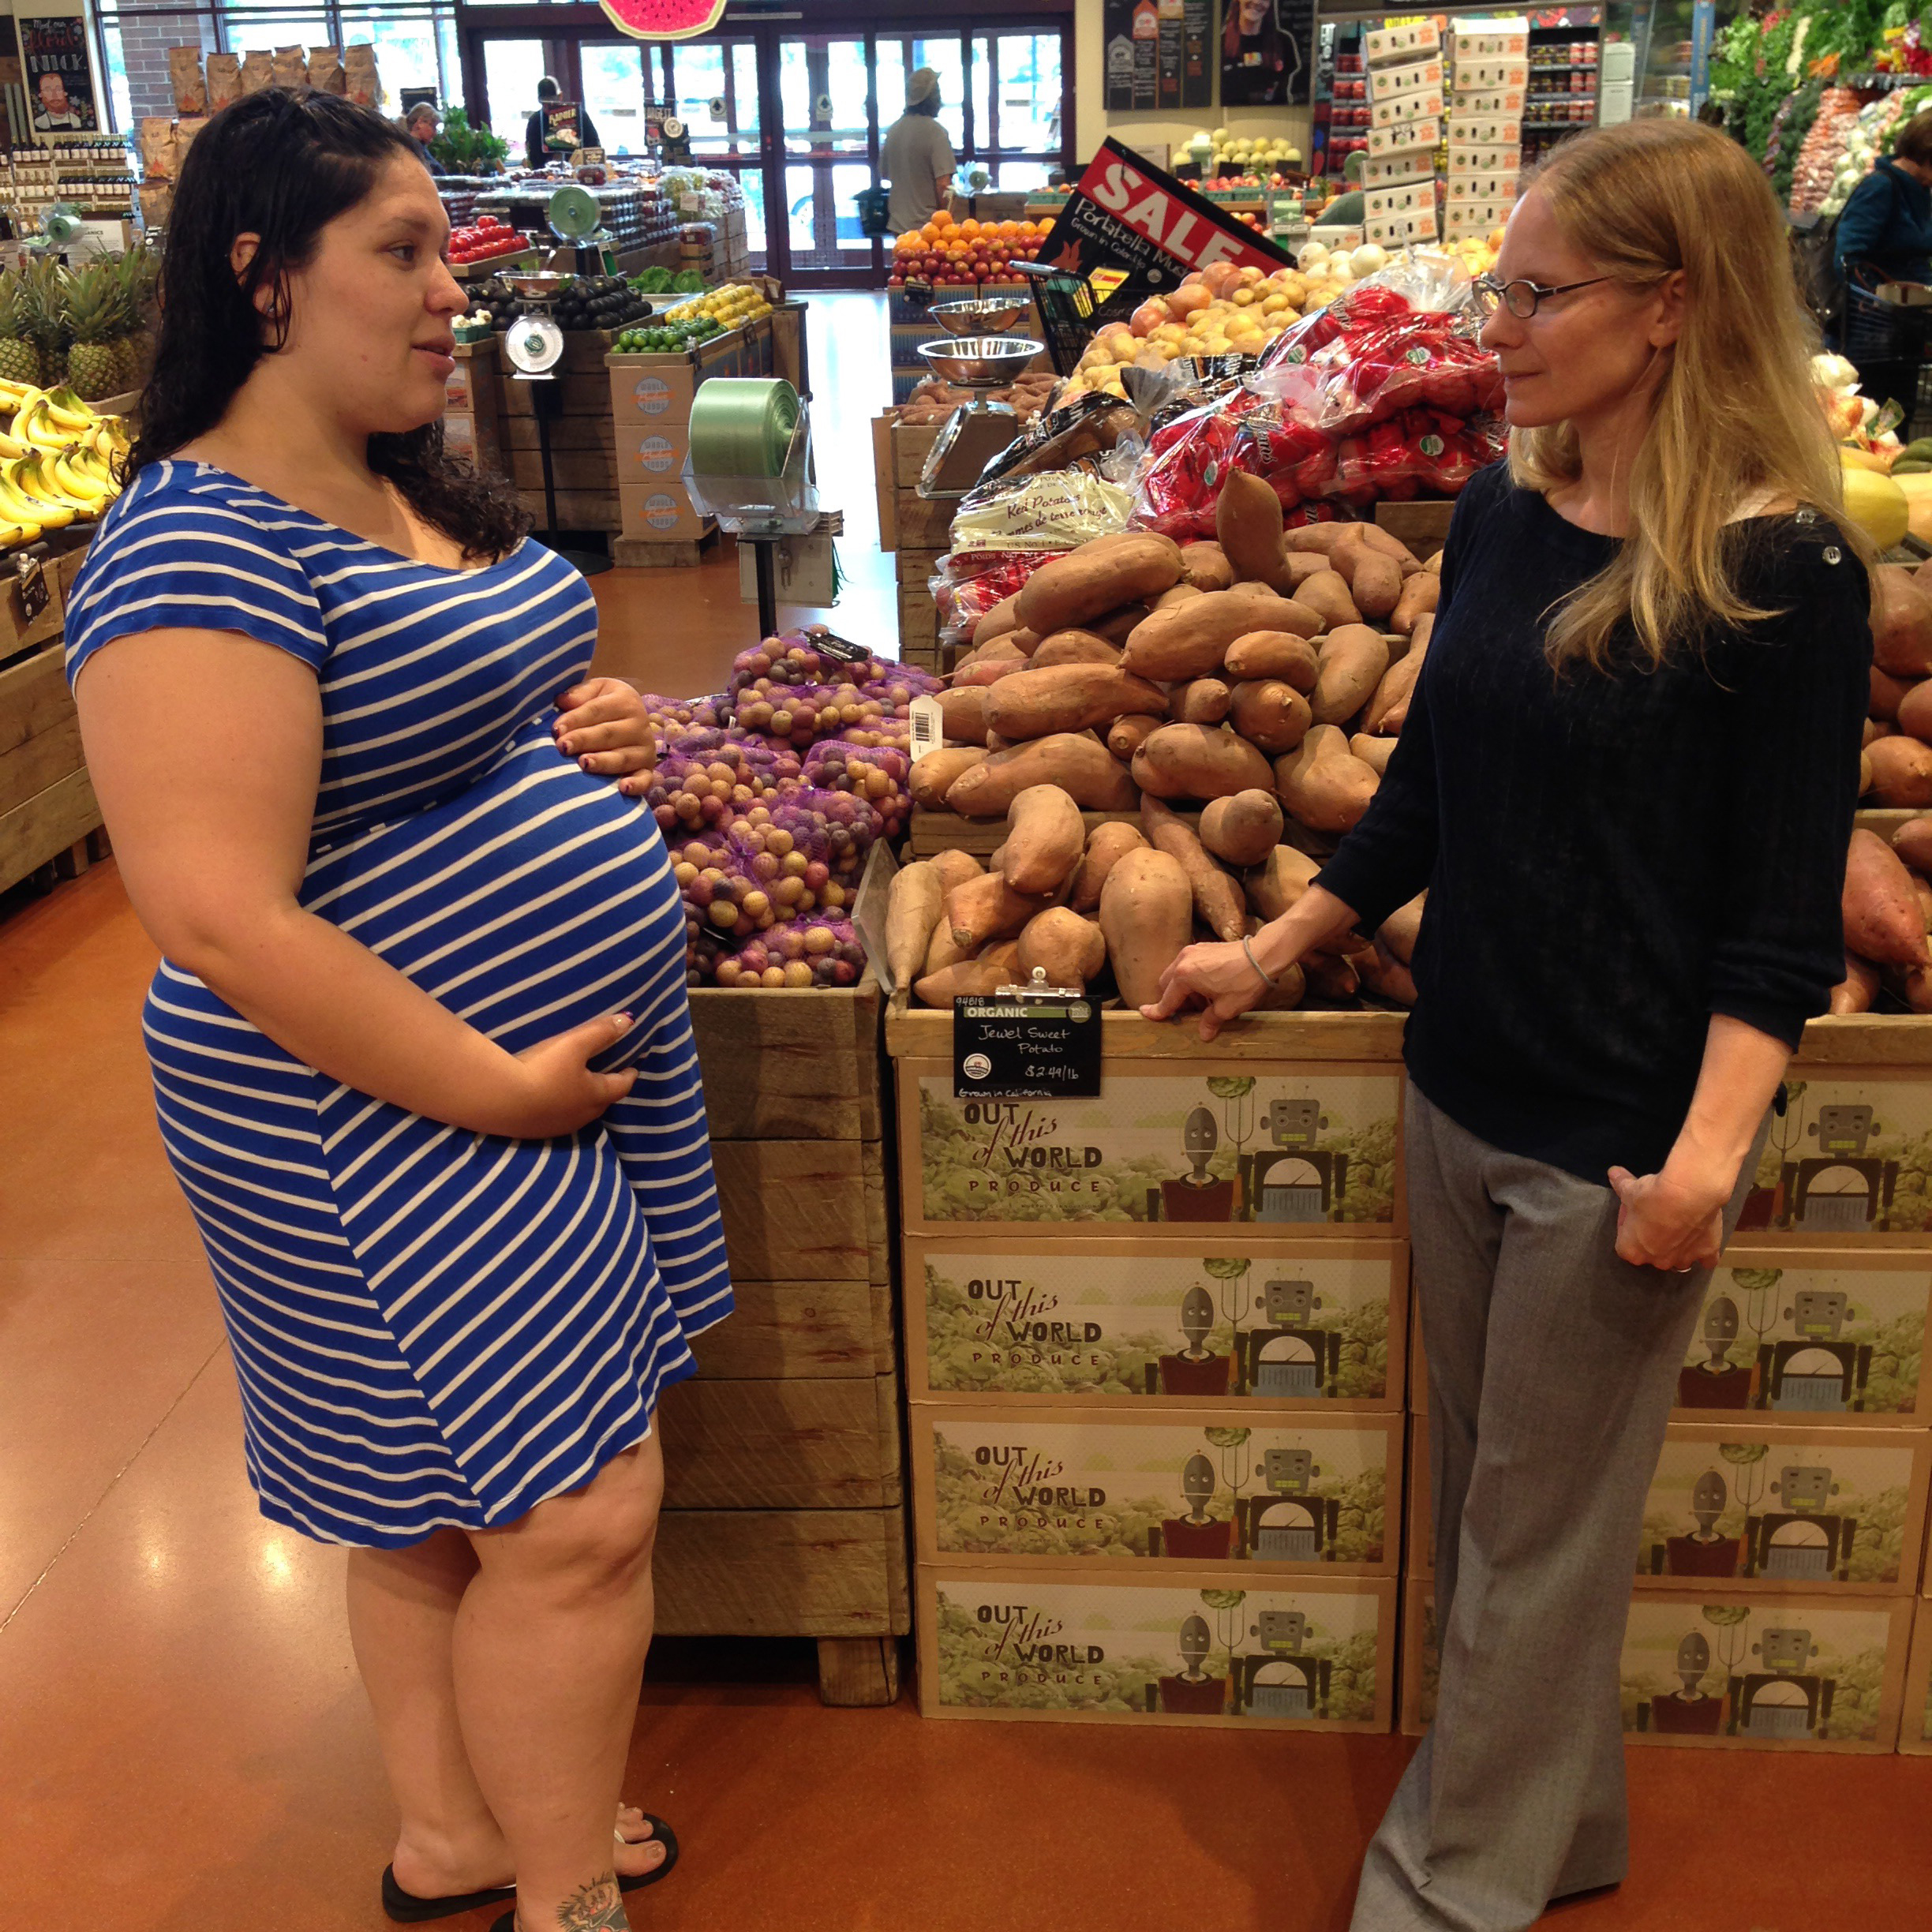 Photo of Curl and Lopez (pregnant) speaking in grocery store